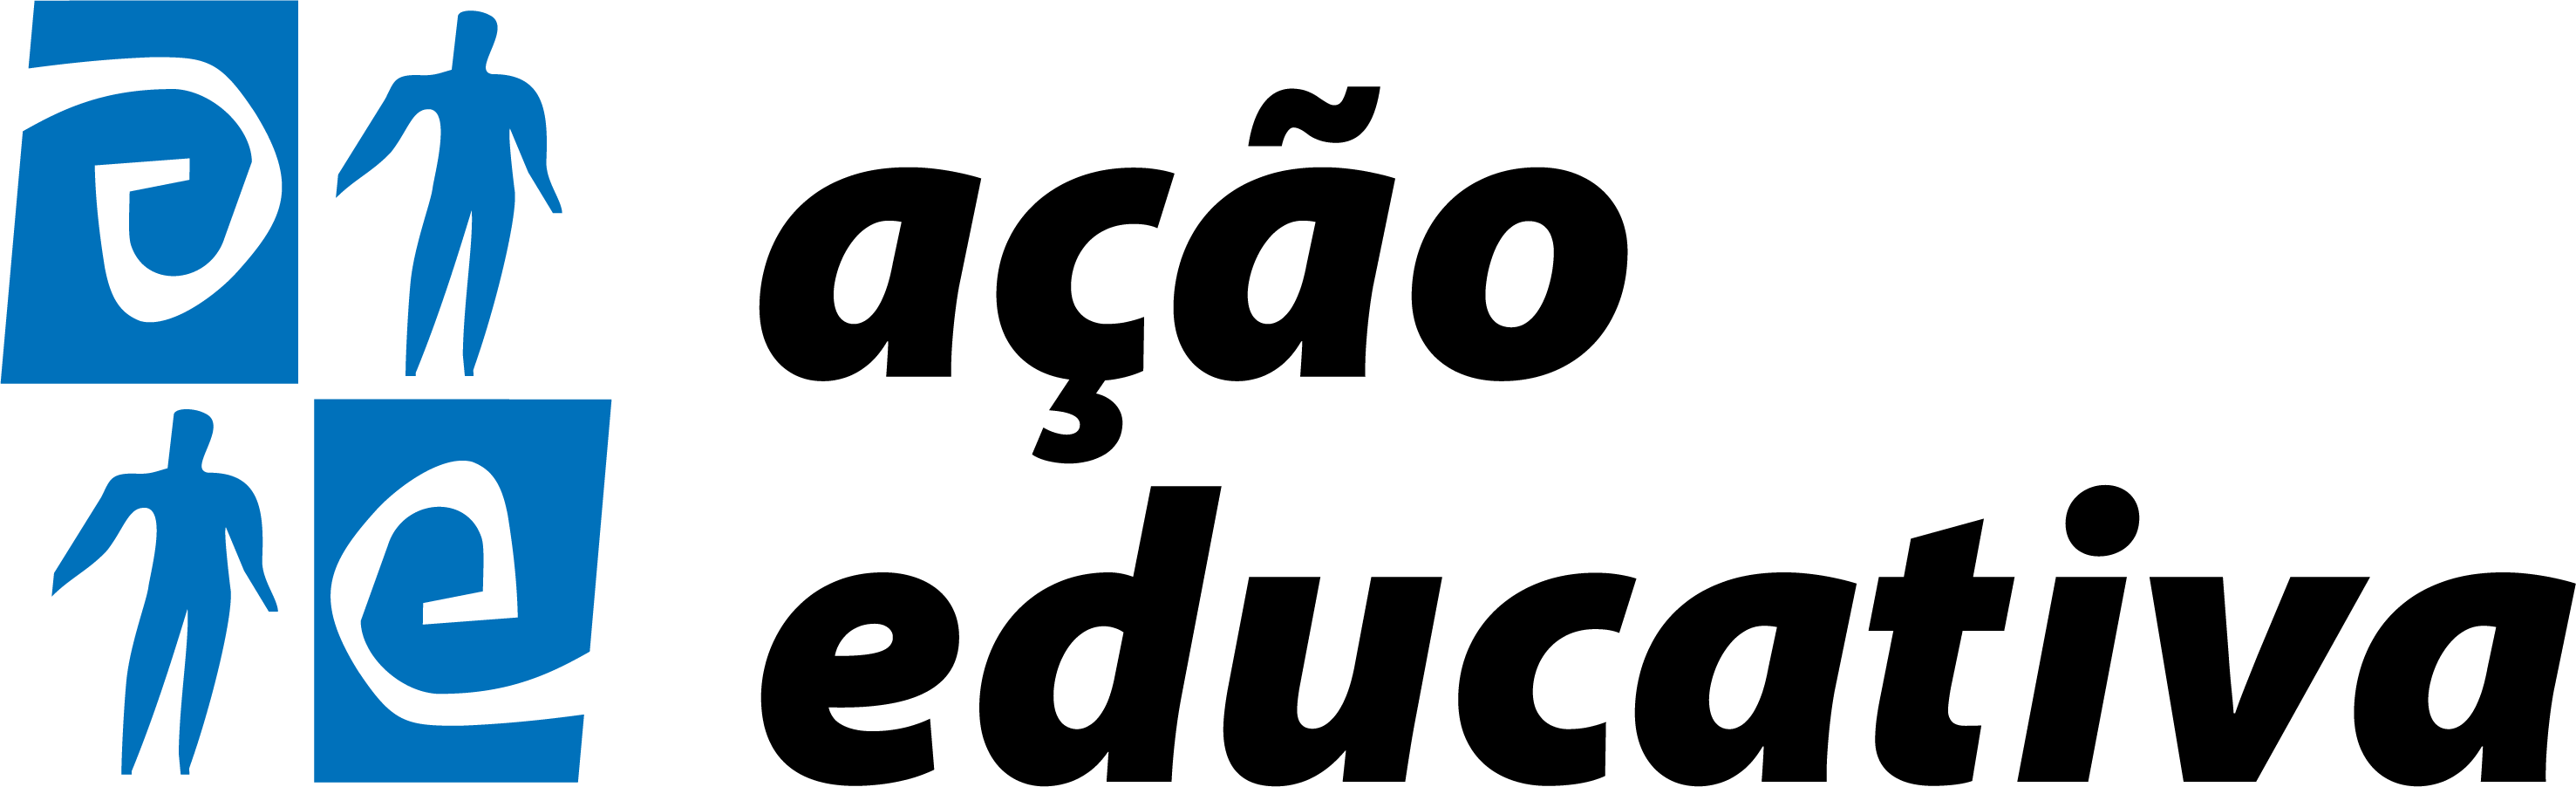 logo_ao-educativa.jpeg